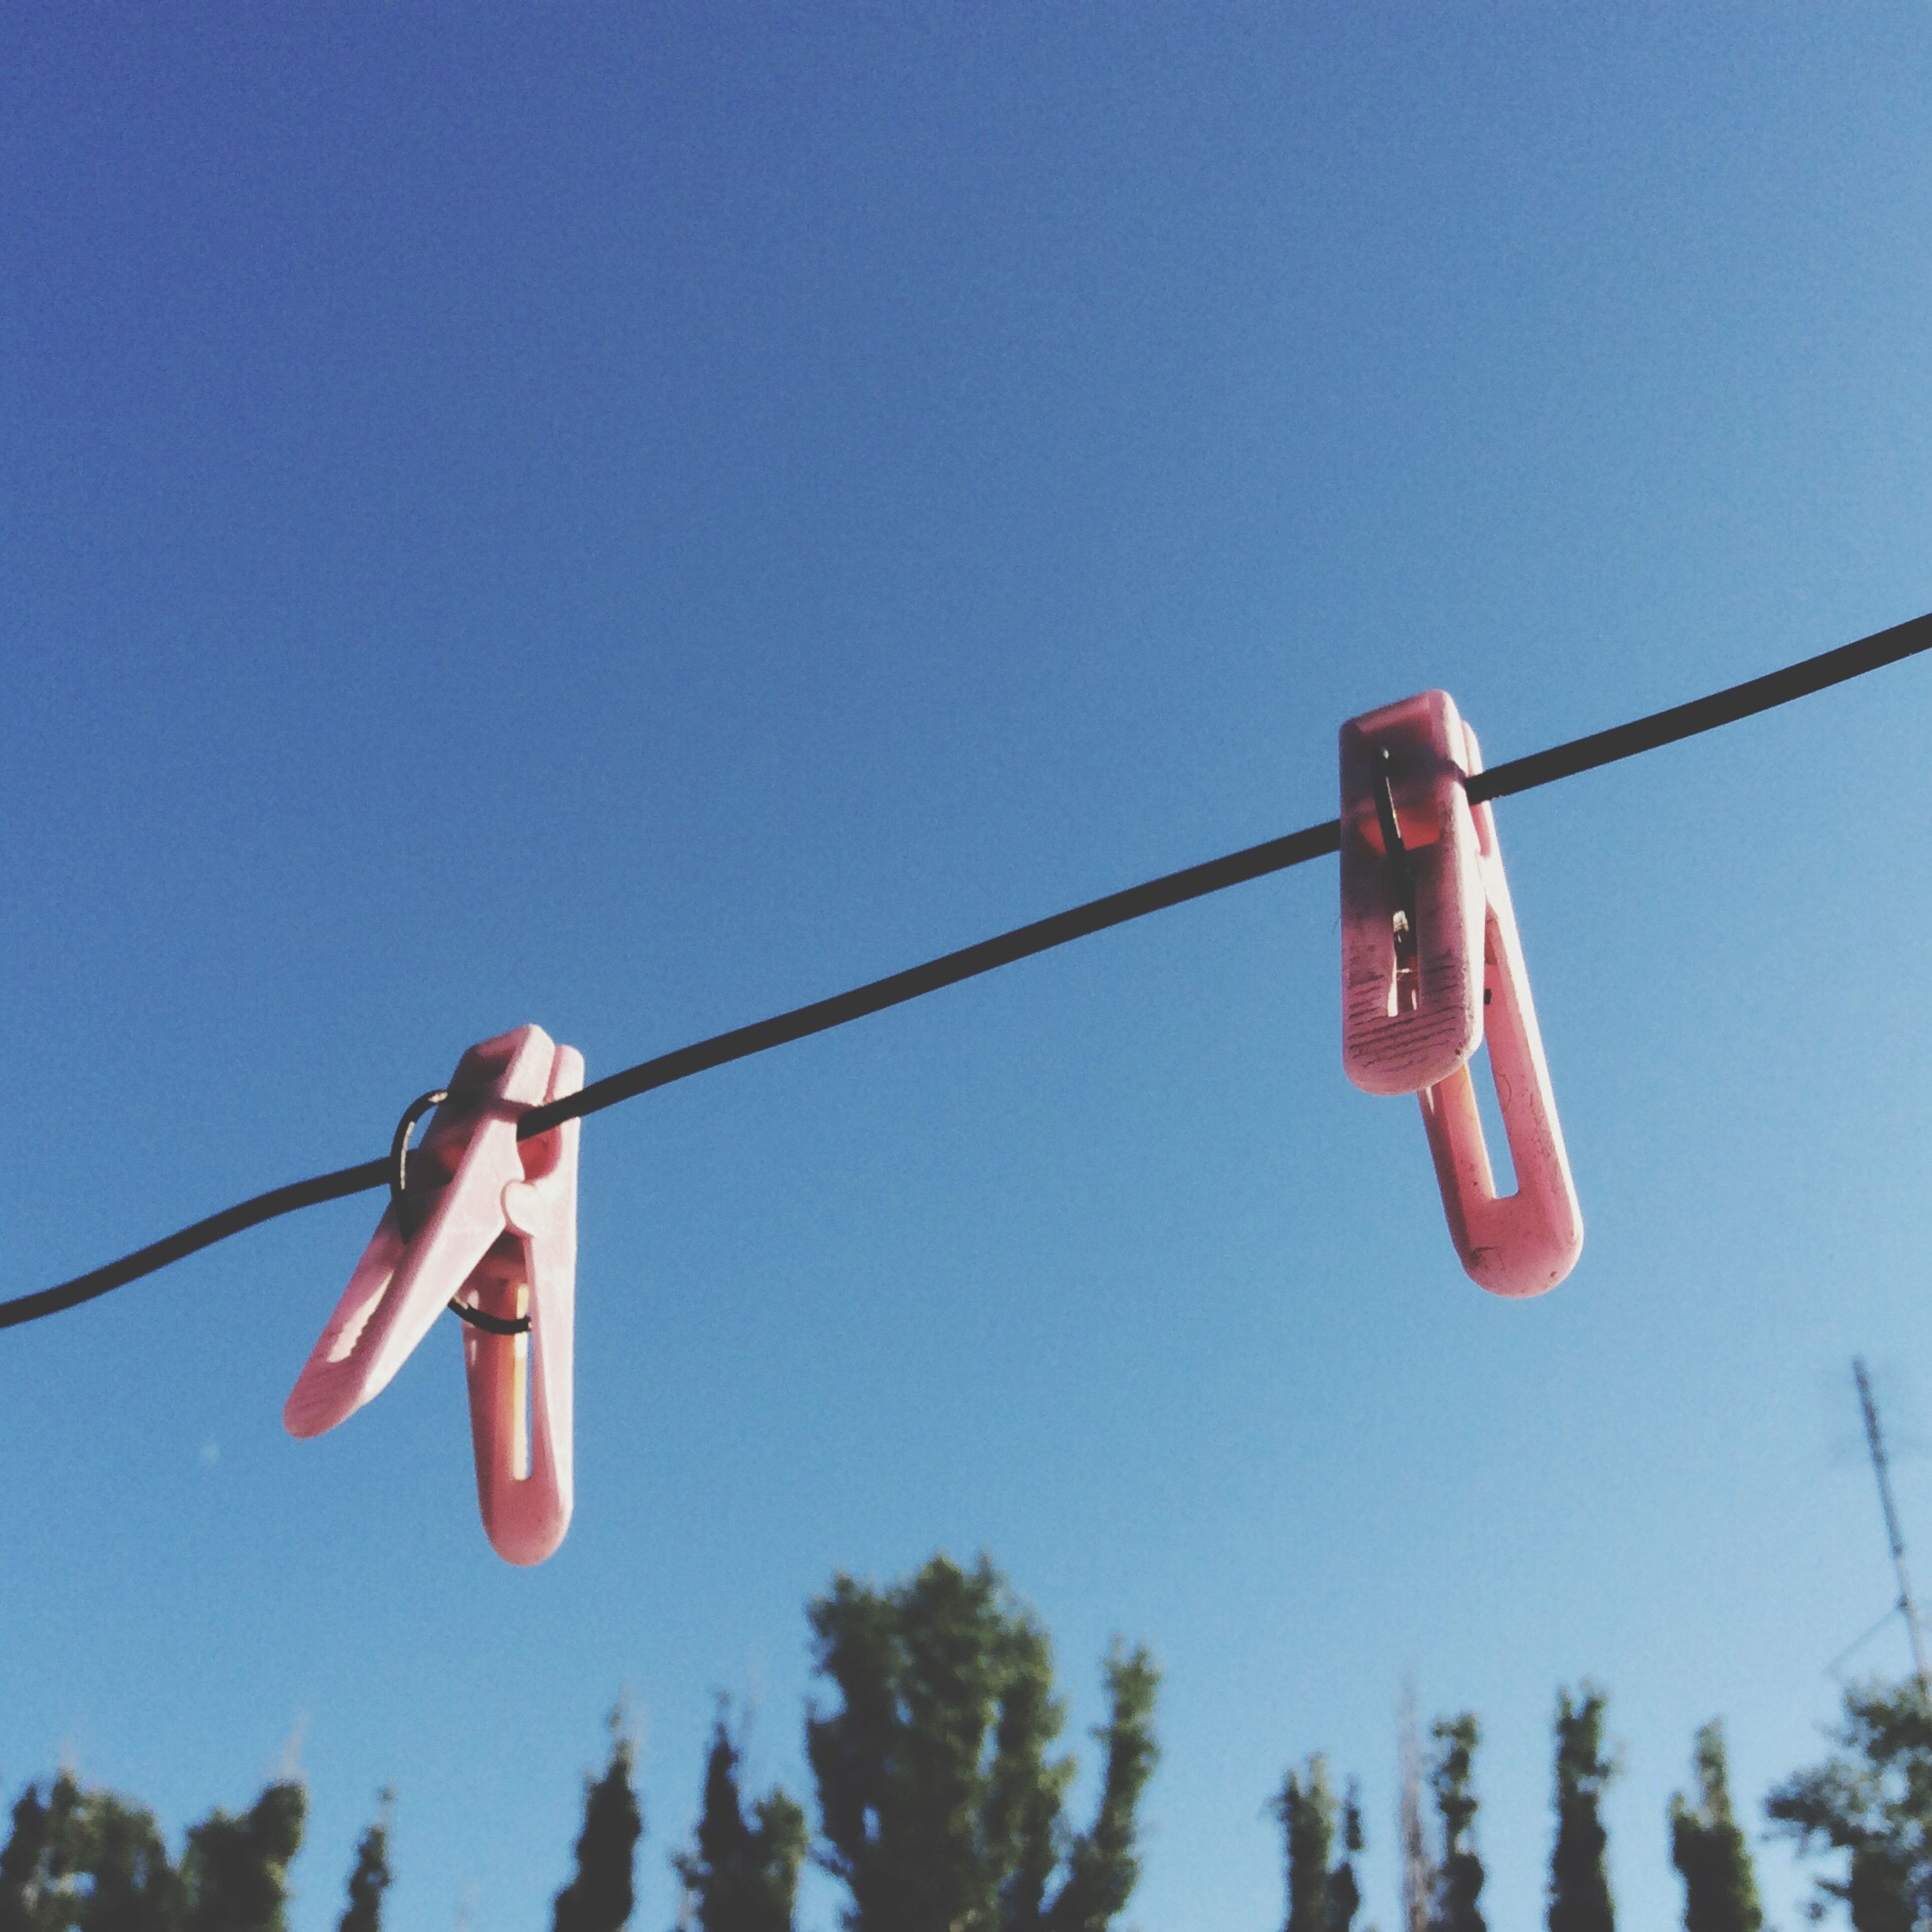 hanging, tree, low angle view, blue, clear sky, clothesline, rope, cable, clothespin, day, laundry, group of objects, high section, summer, scenics, red, tranquility, domestic life